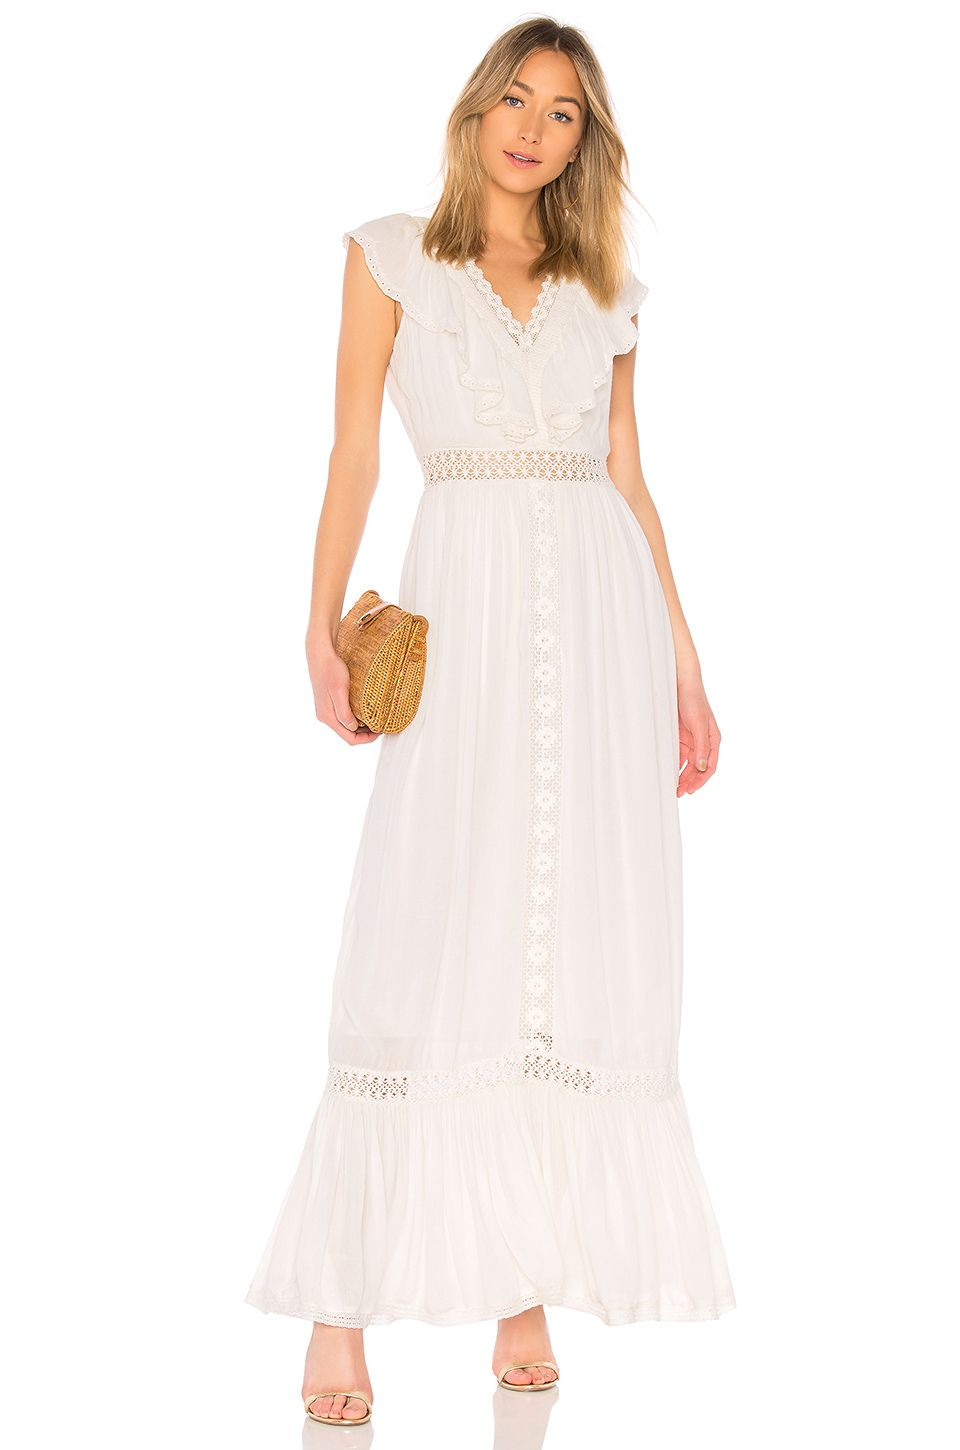 1960 wedding dresses  House of Harlow  x REVOLVE Mora Dress in Cream  Yes to the